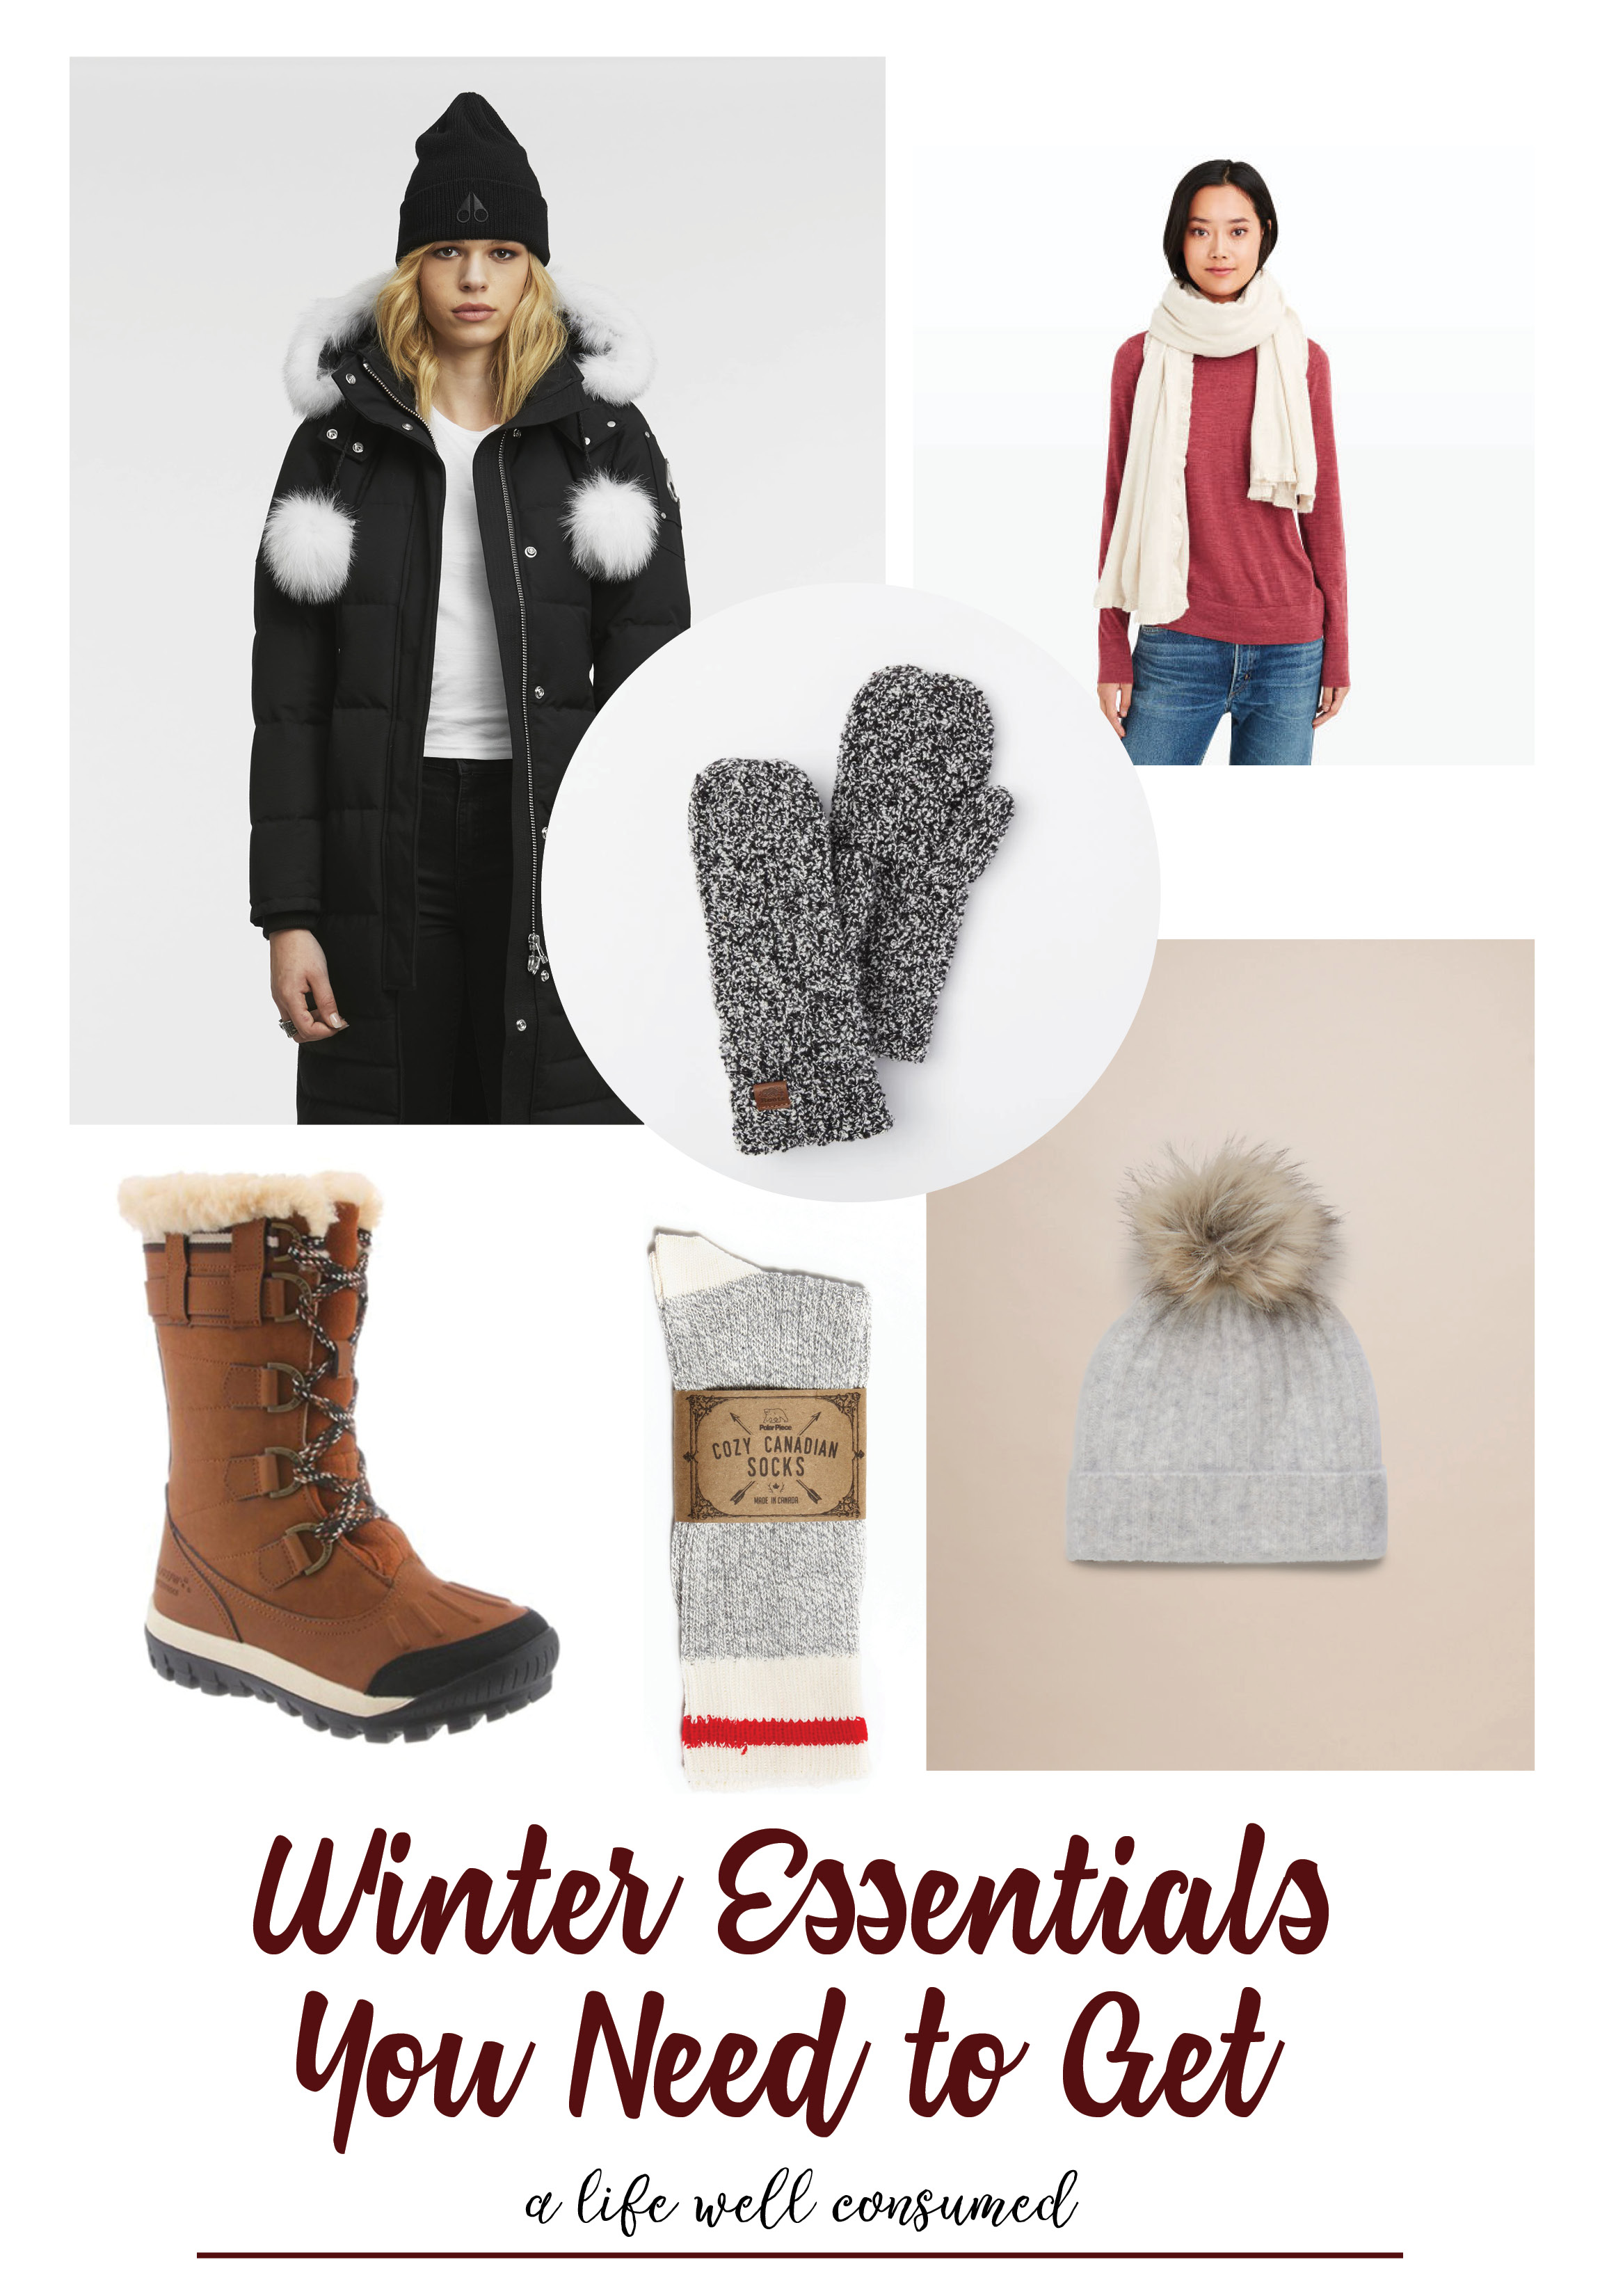 Winter Essentials You Need to Get